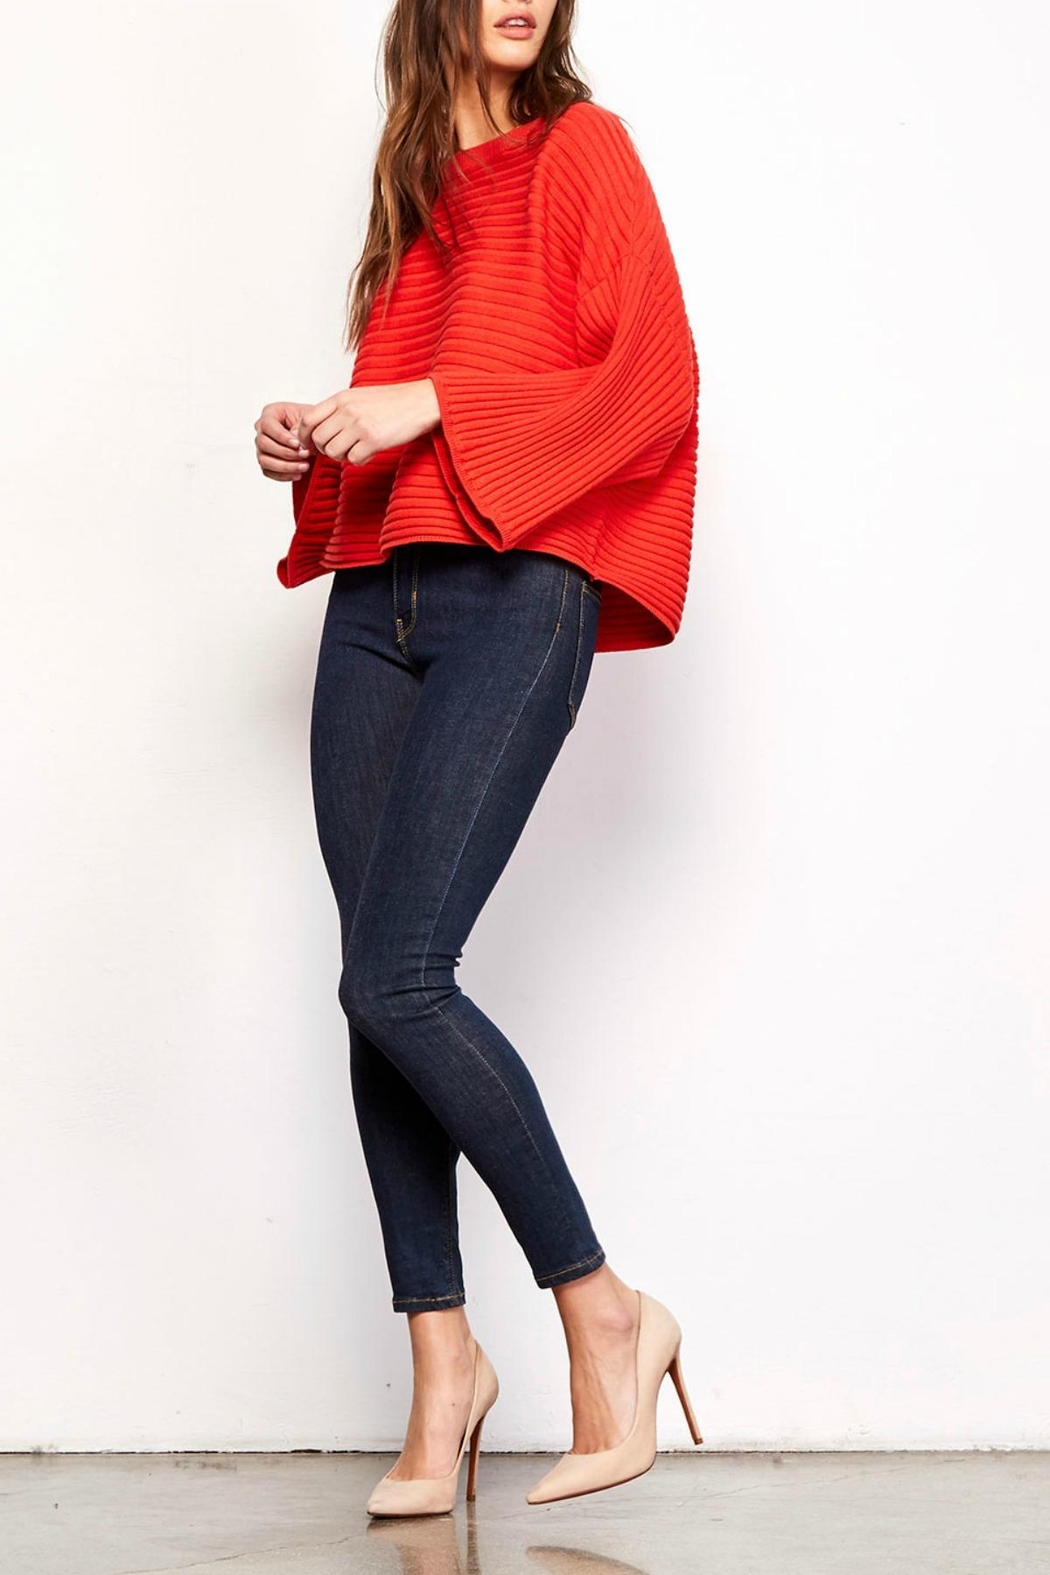 Jack by BB Dakota Claudel Red Sweater - Main Image